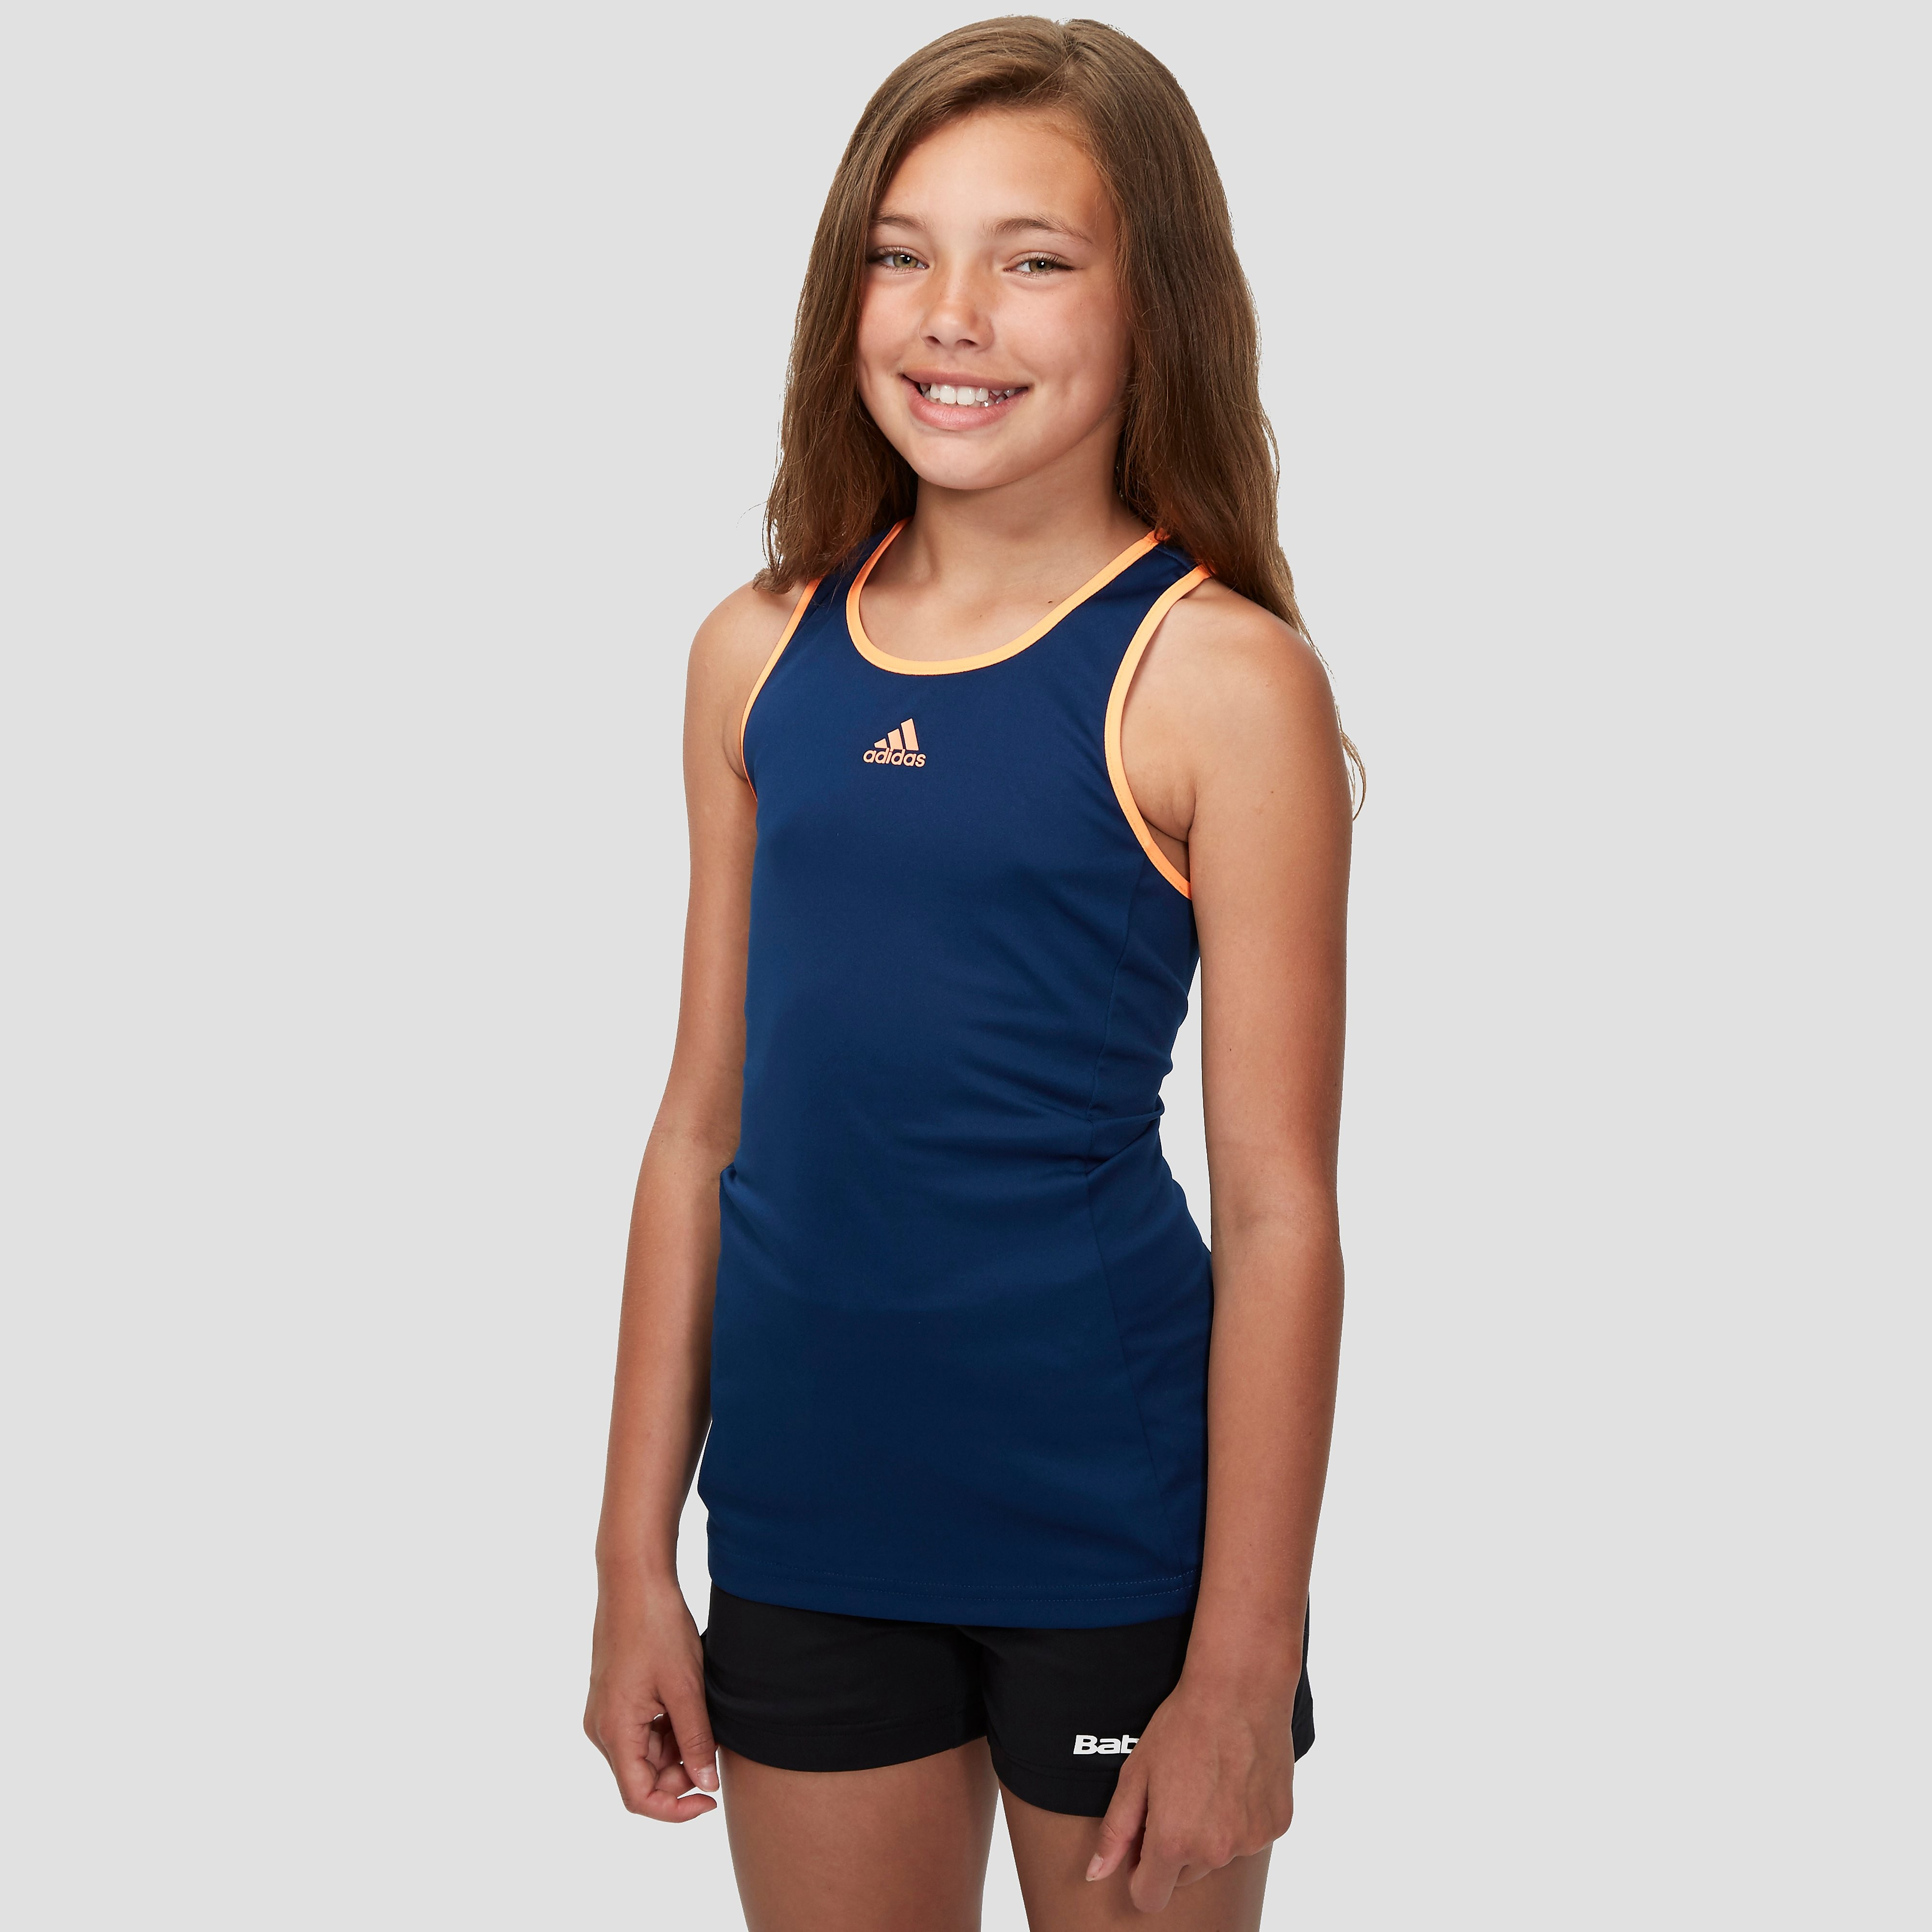 adidas Melbourne Girl's Tennis Tank Top